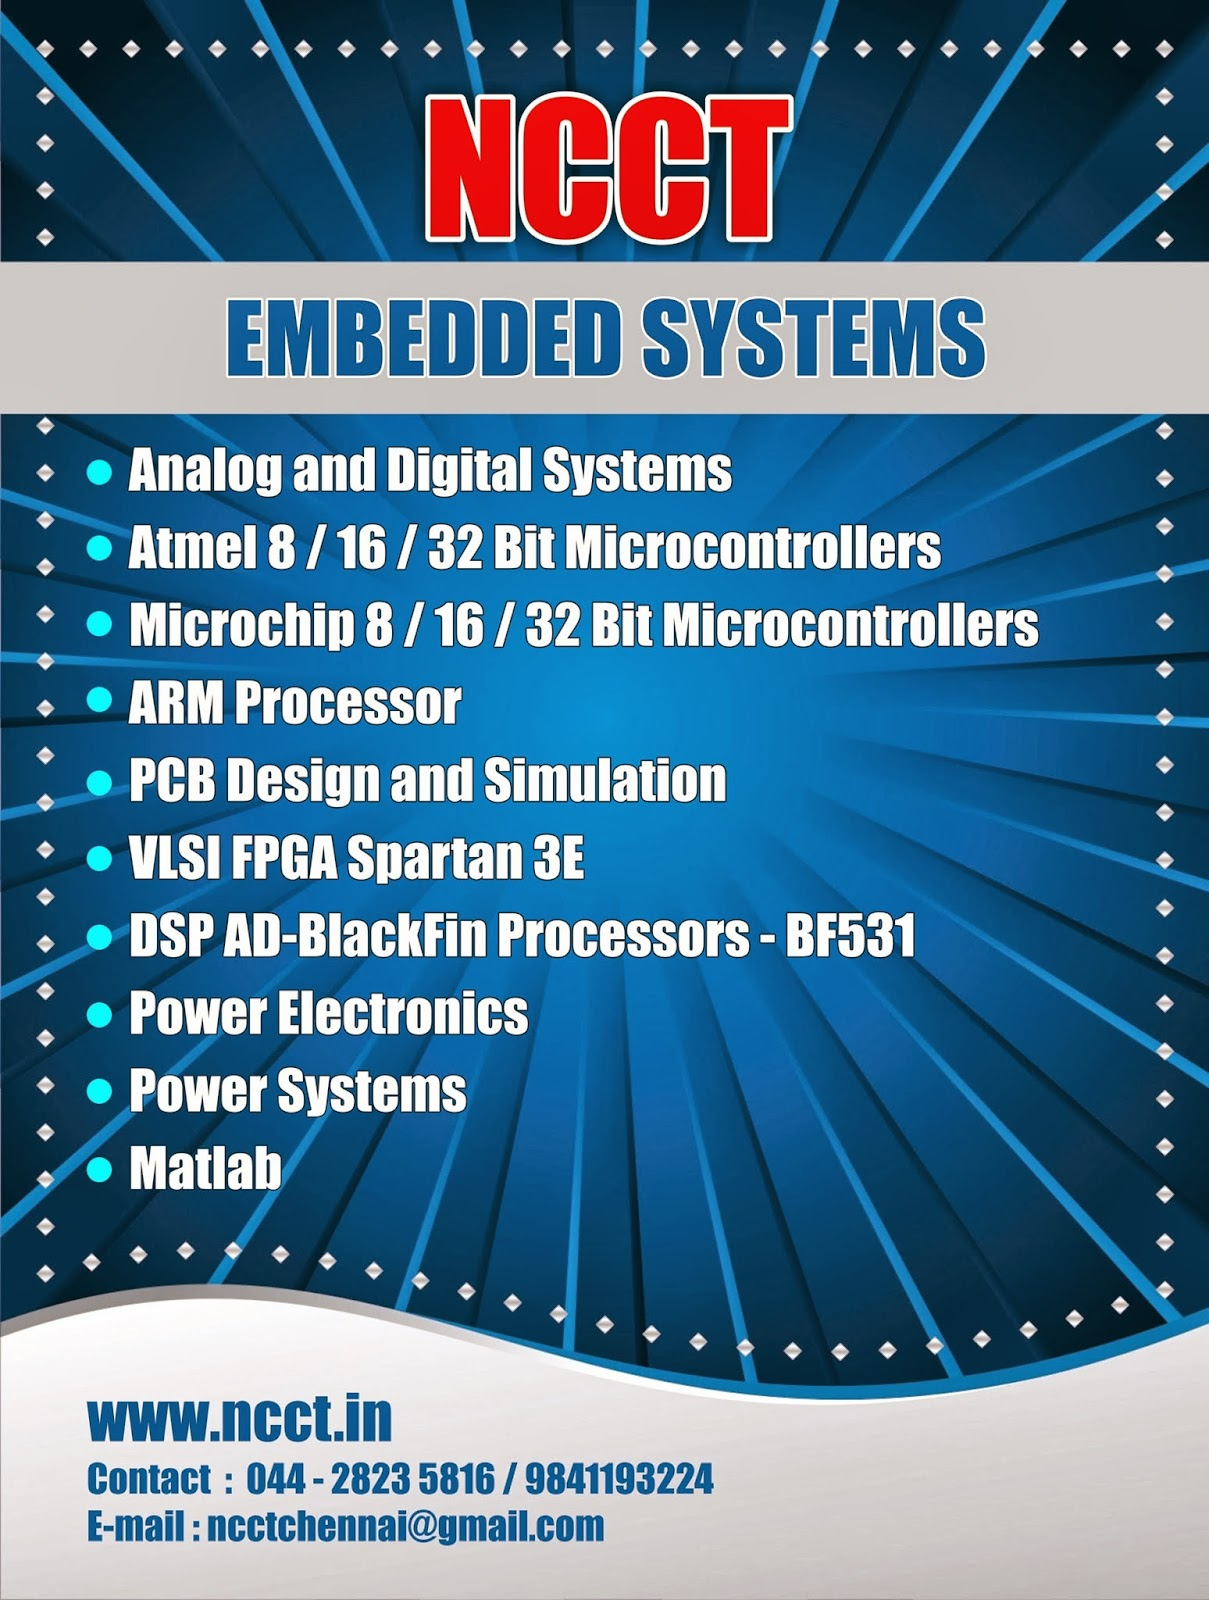 Ncct Project Image Gallery Atmel Pic Dspic Vlsi Matlab Arm Dsp Electronics Projects Arduino Microcontroller And Cpld Fpga Adsp Blackfin Ieee Final Year Embedded System